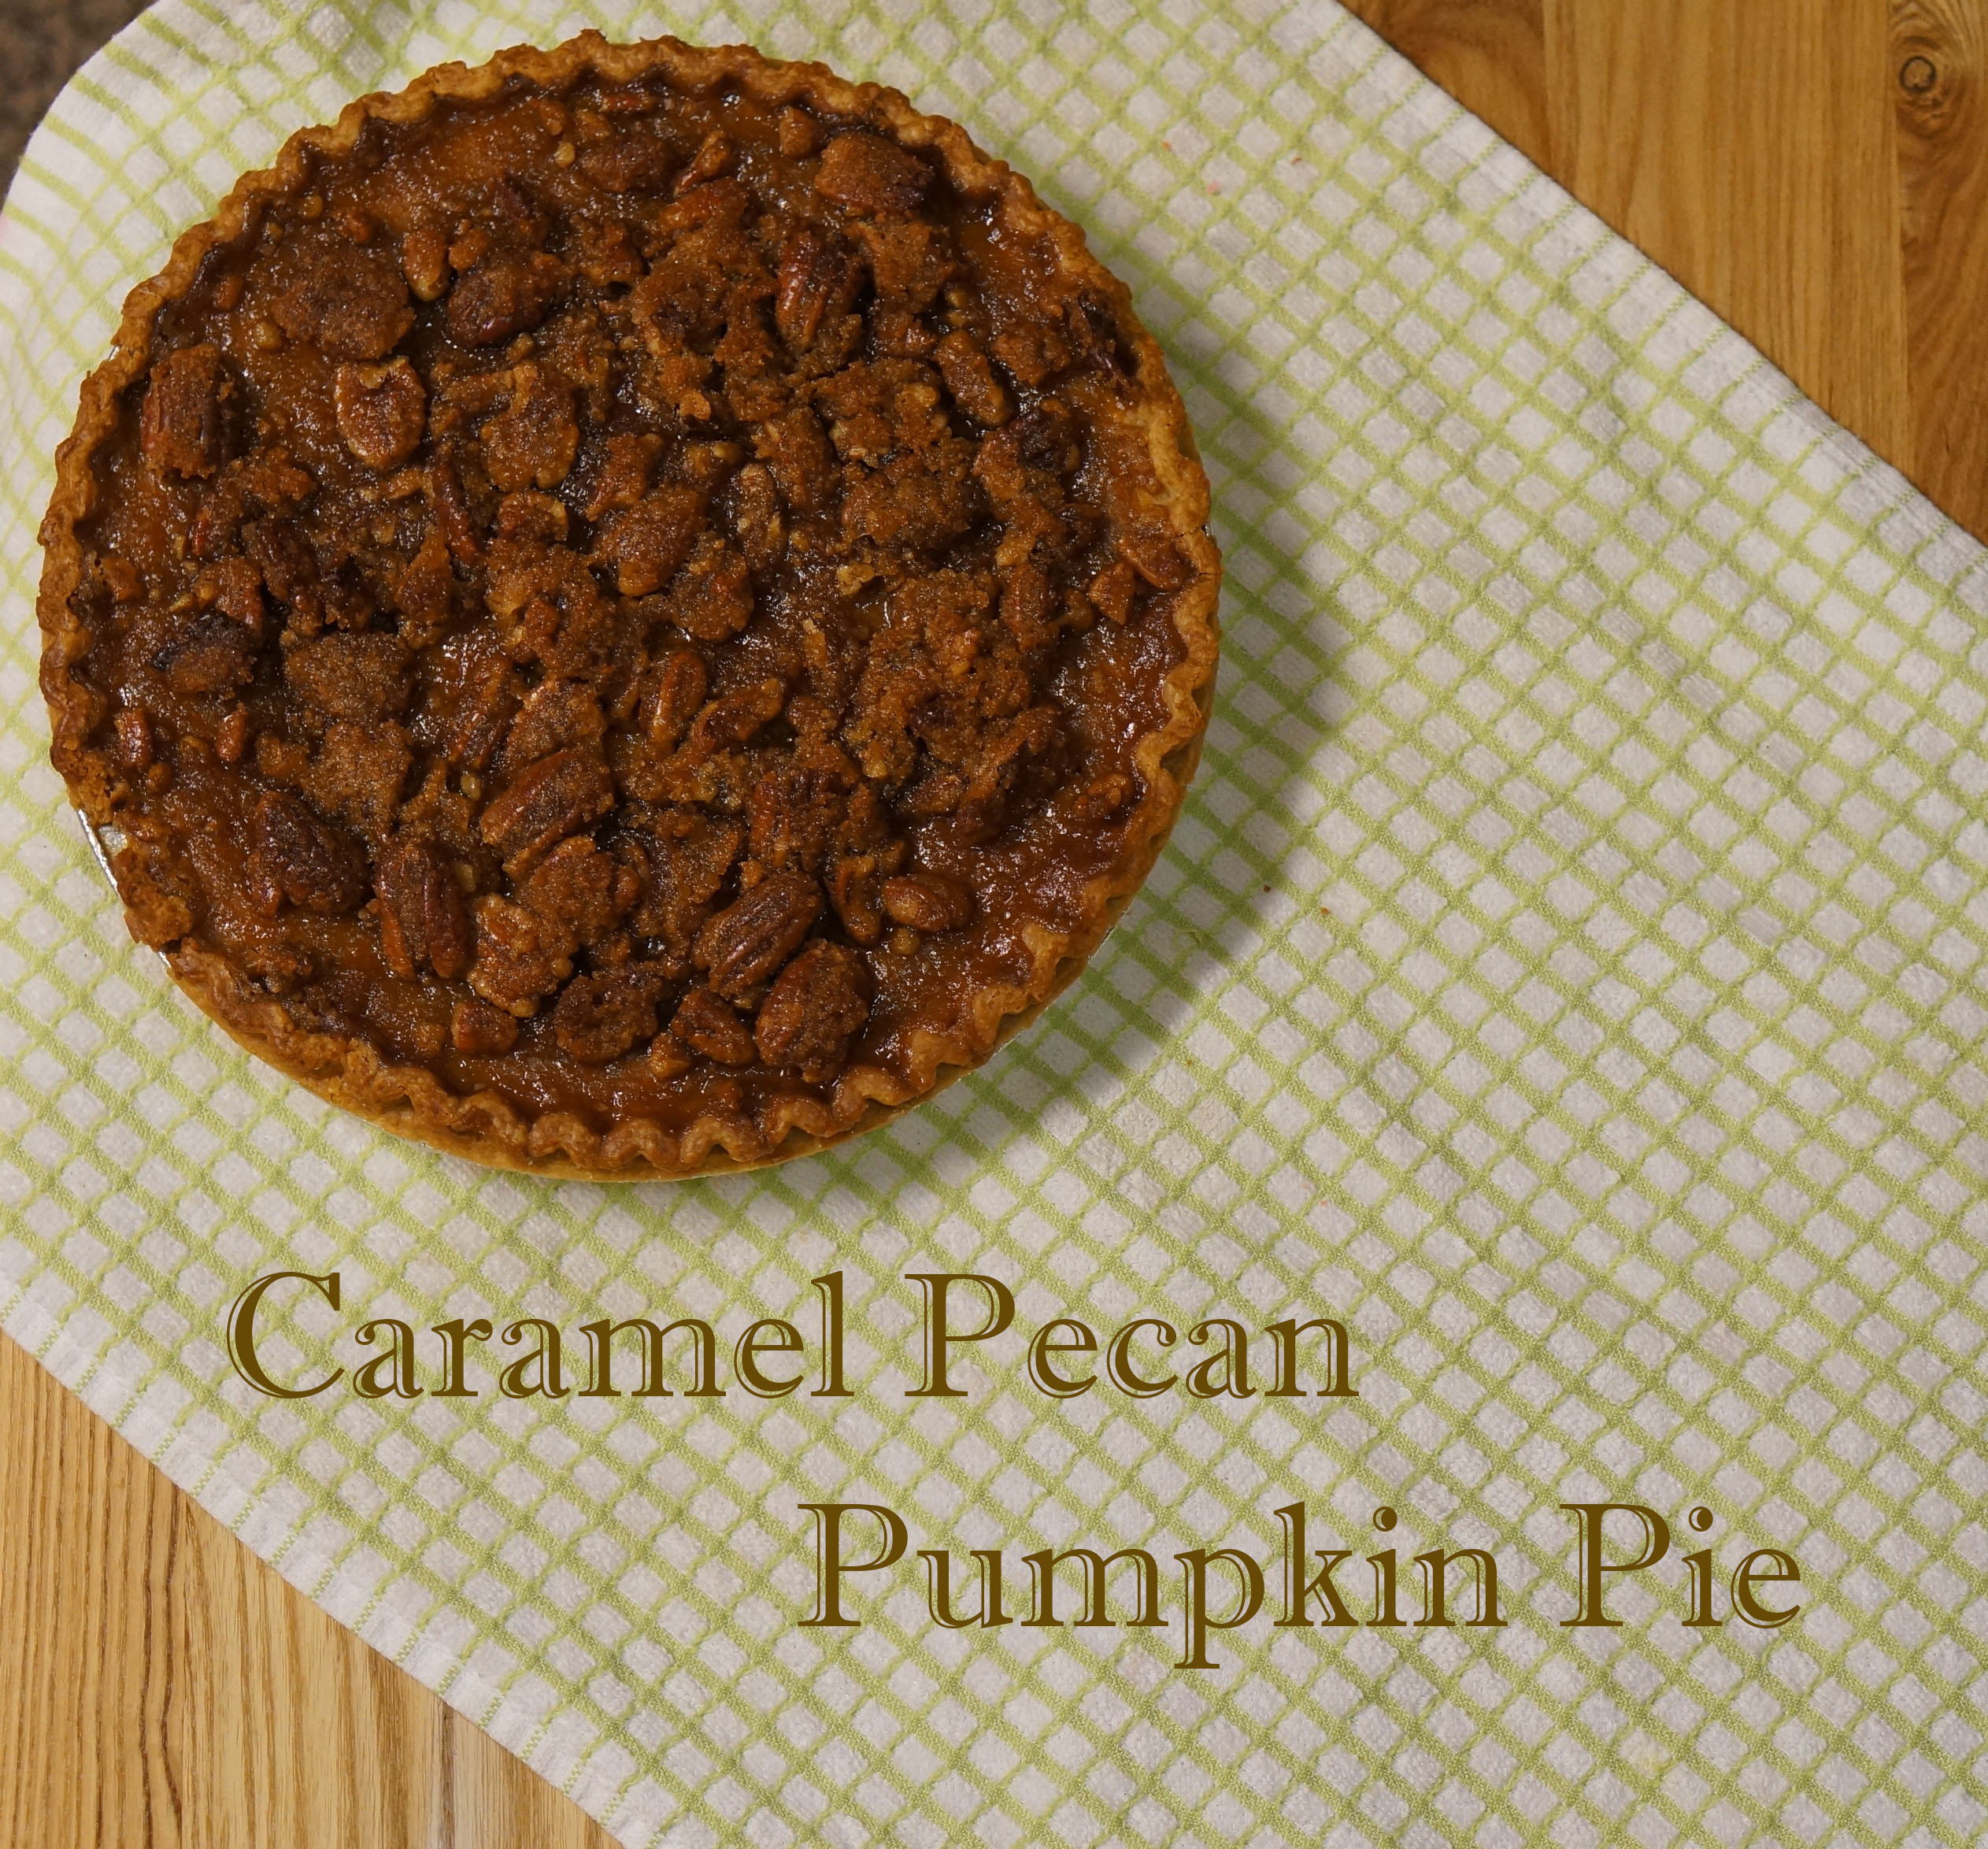 Caramel Pecan Pumpkin Pie - We're Calling Shenanigans